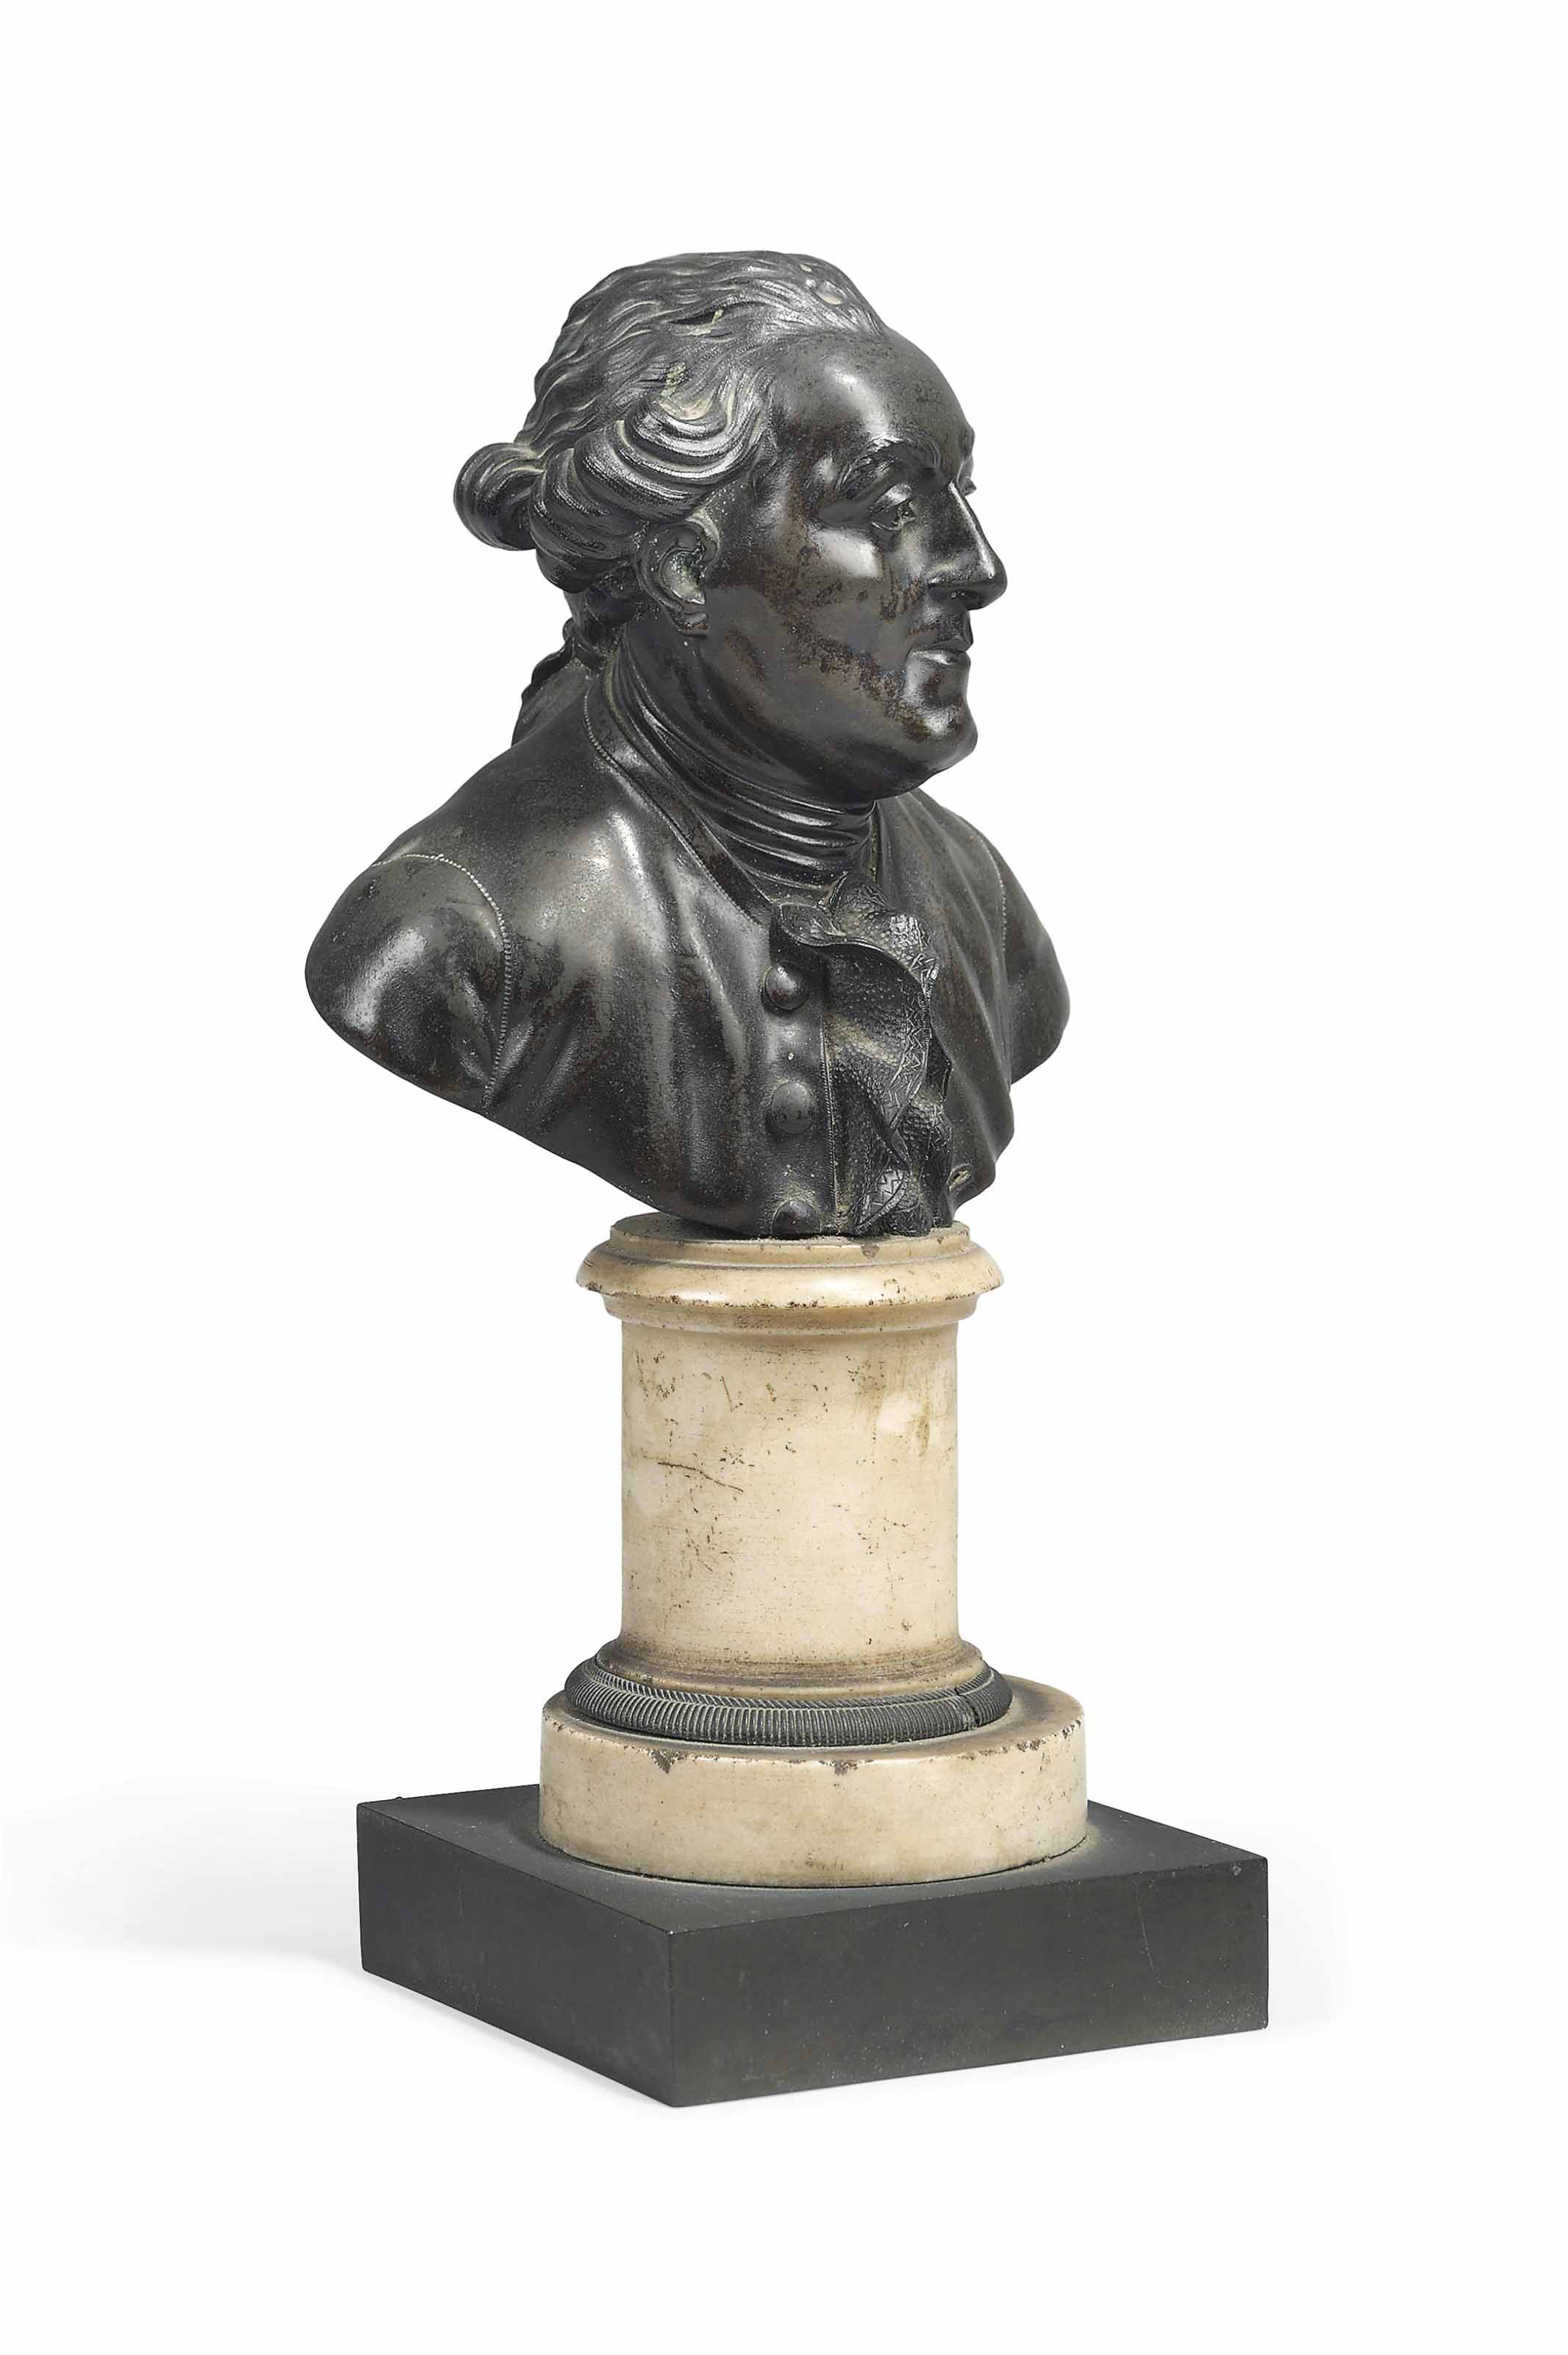 A BRONZE BUST OF A BEWIGGED GENTLEMAN, POSSIBLY LOUIS XVI